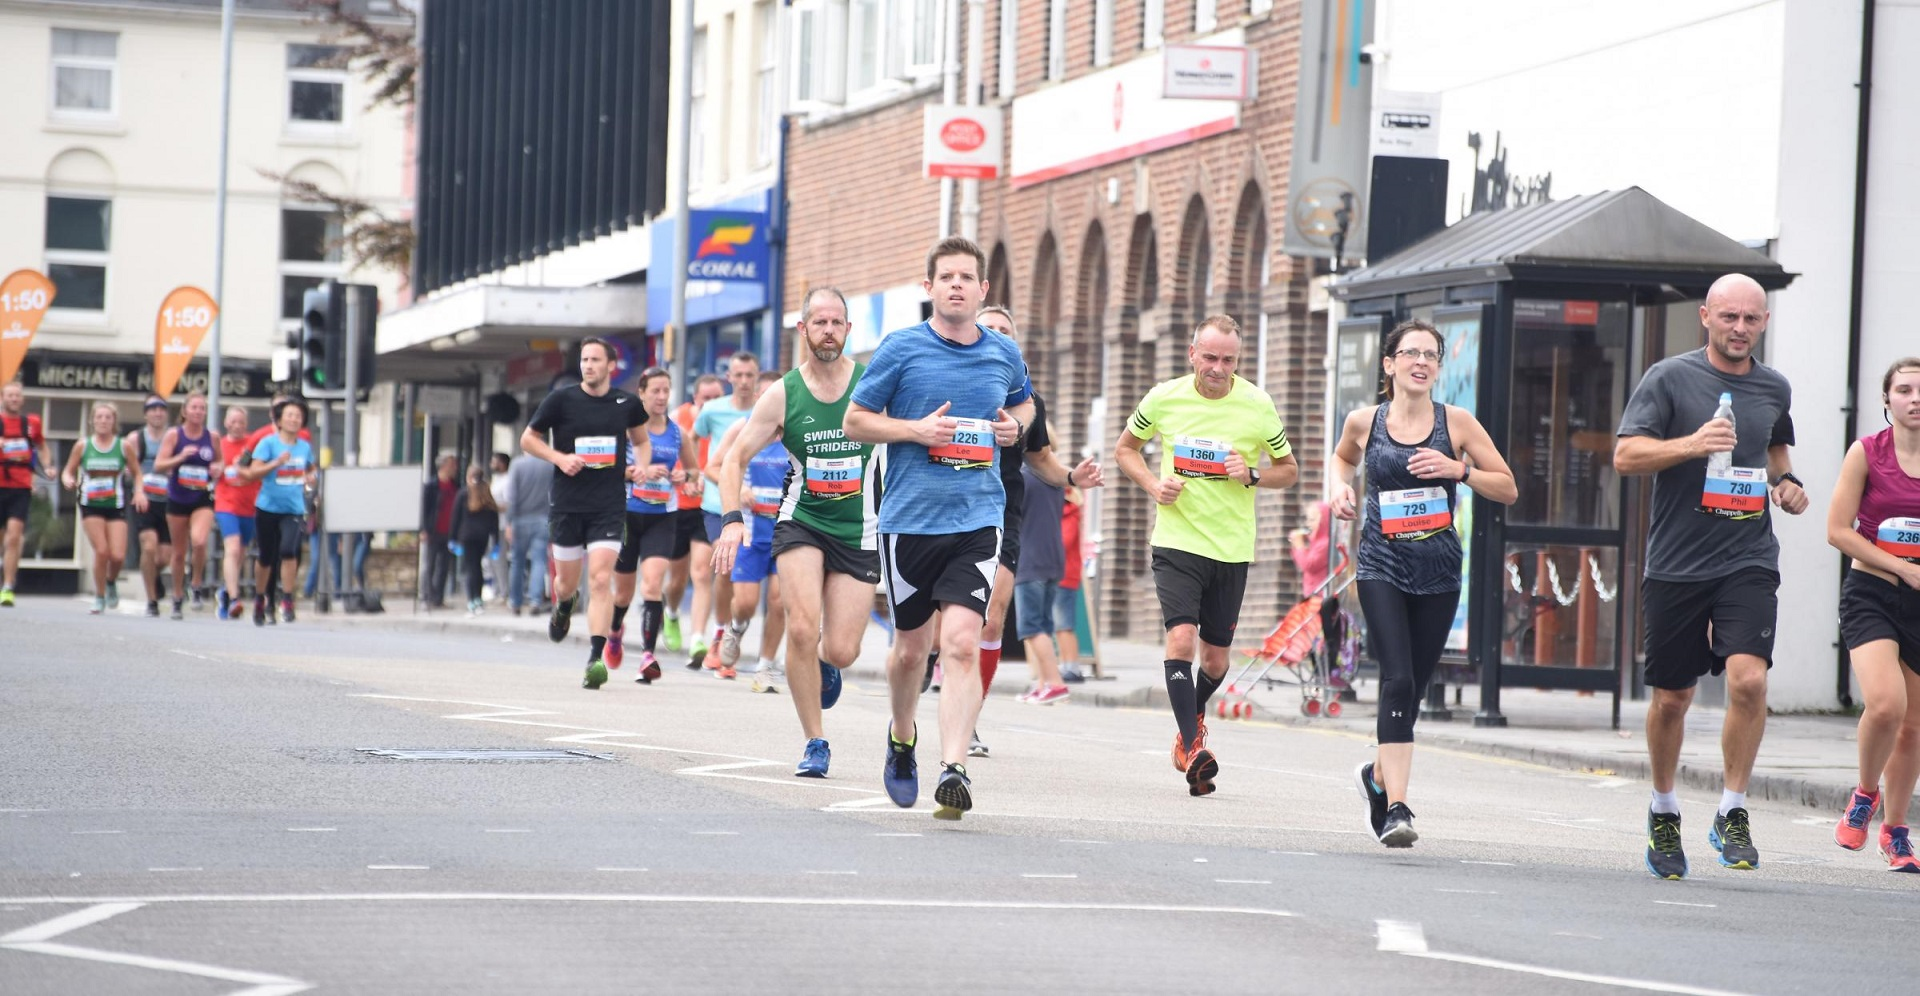 The Nationwide Building Society New Swindon Half Marathon